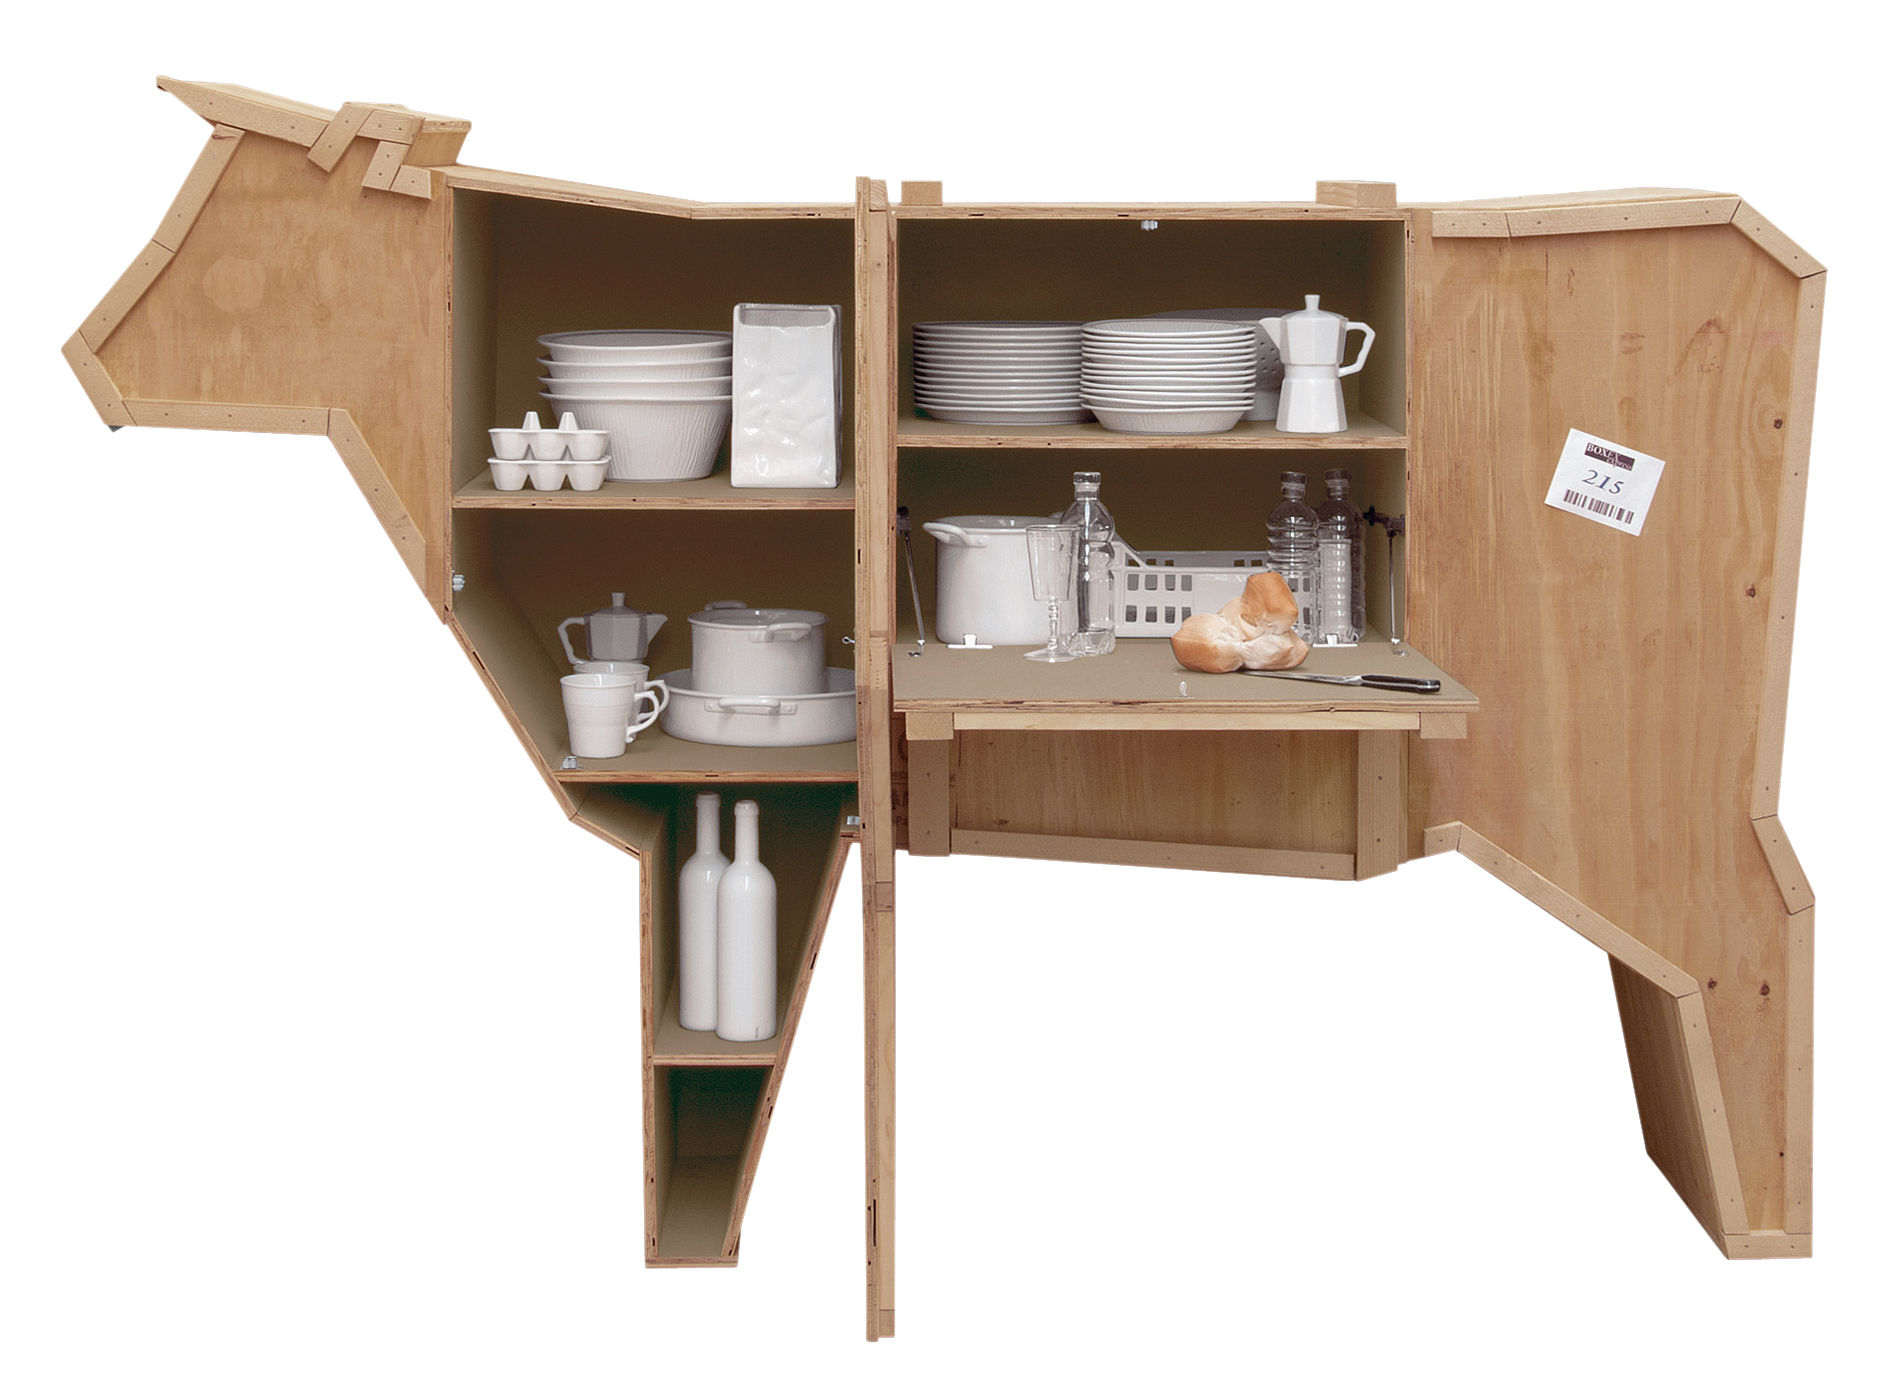 Furniture - Dressers & Storage Units - Sending Animals Vache Dresser by Seletti - Natural wood - Wood